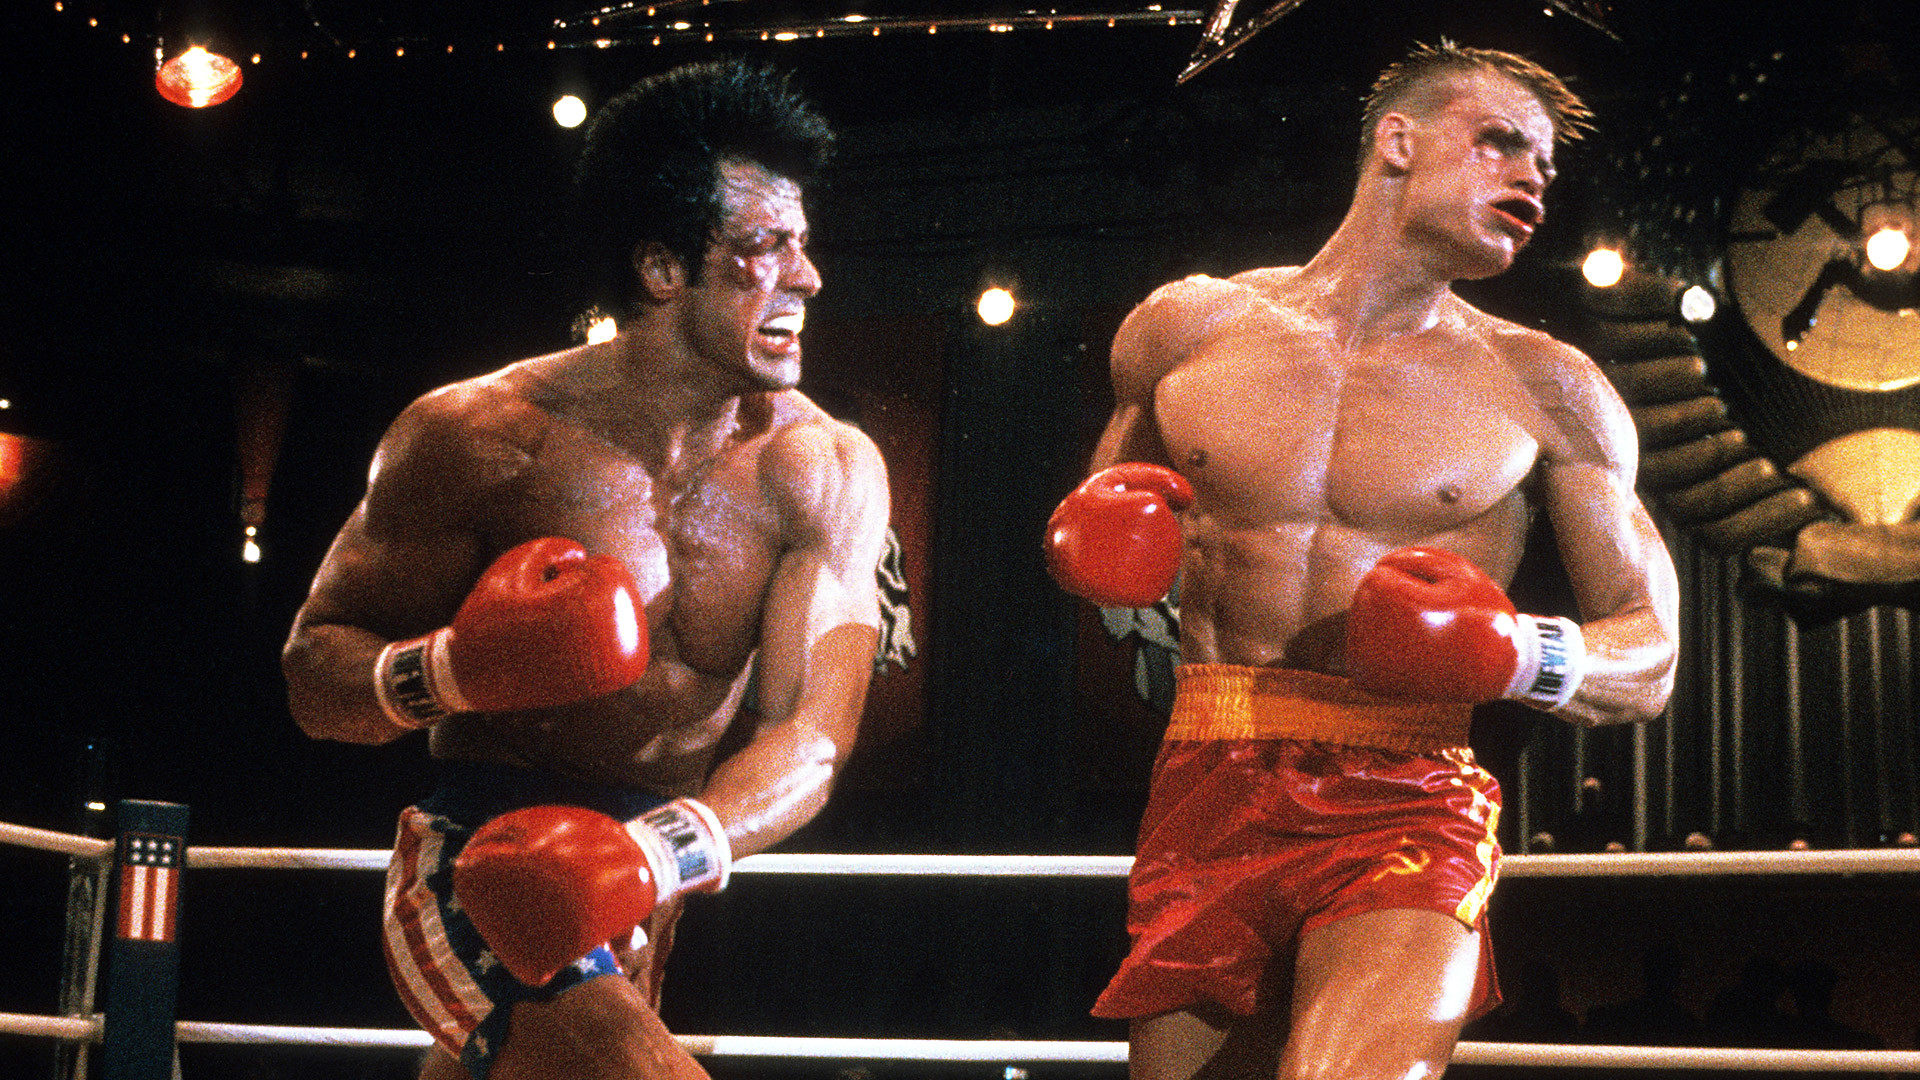 Stallone punches Dolph Lundgren in a scene from the film 'Rocky IV', 1985.